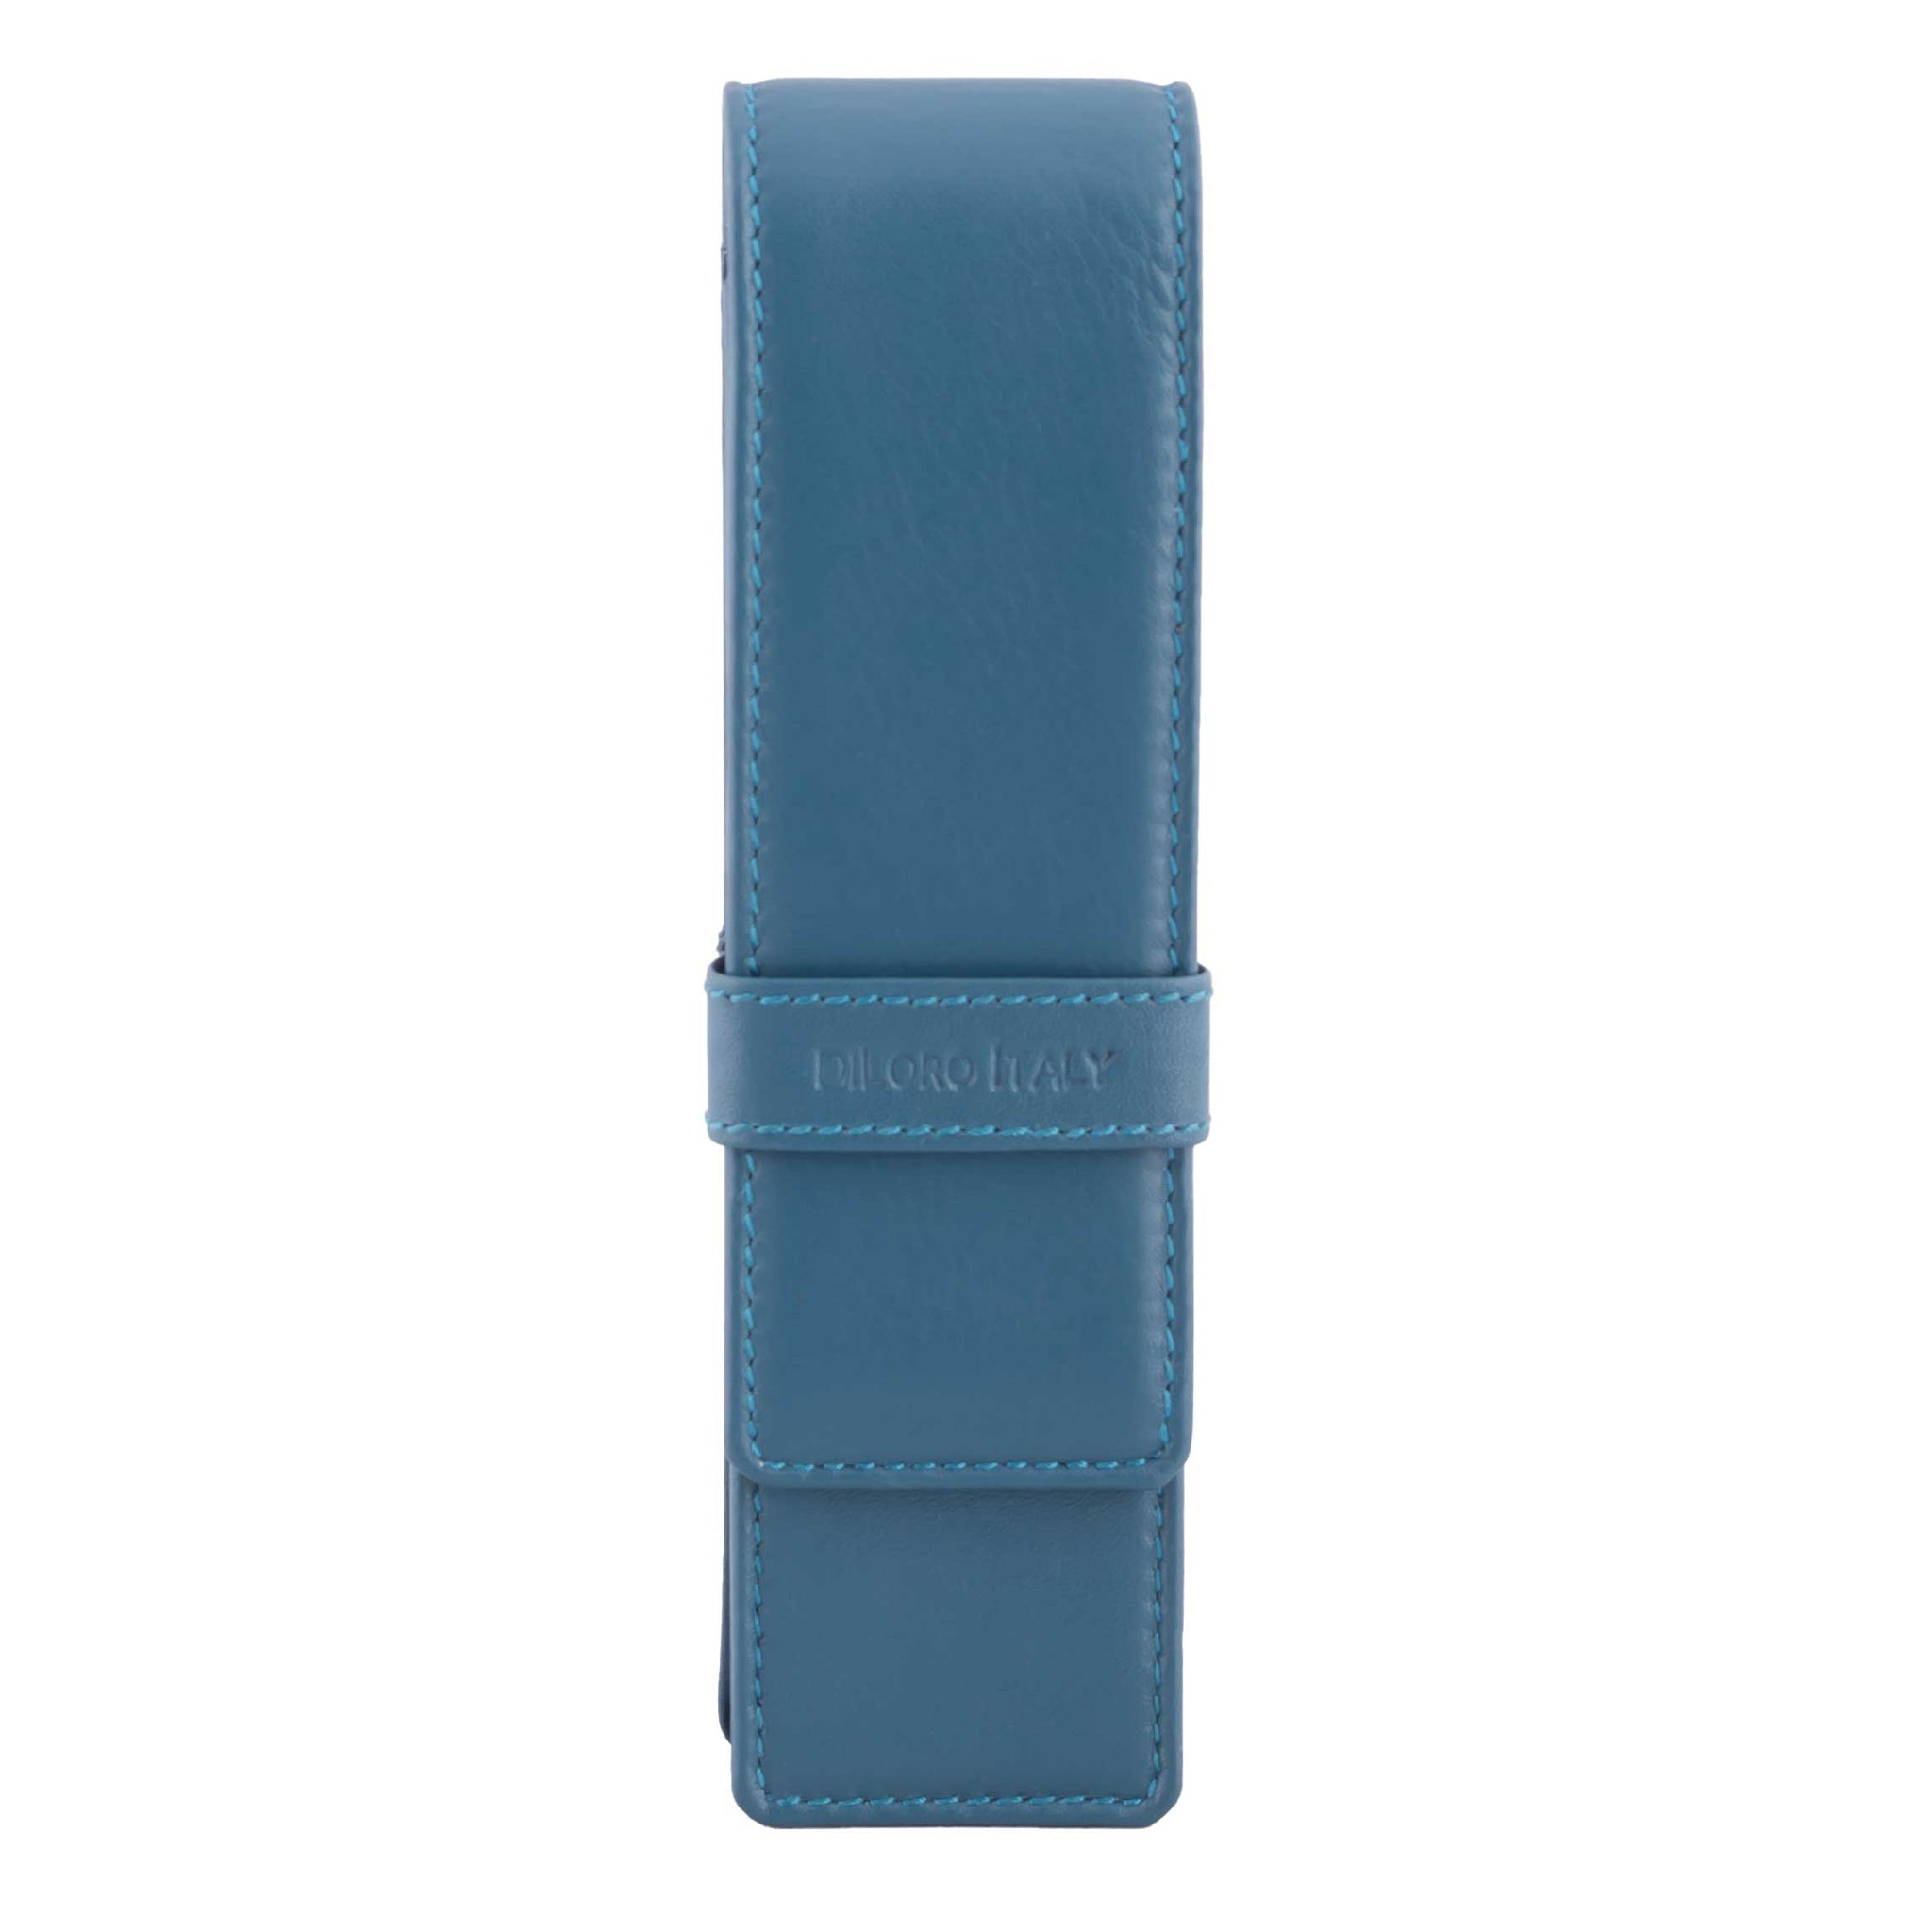 DiLoro Double Pen Case Holder in Top Quality, Full Grain Nappa Leather - Blue (Sololio)